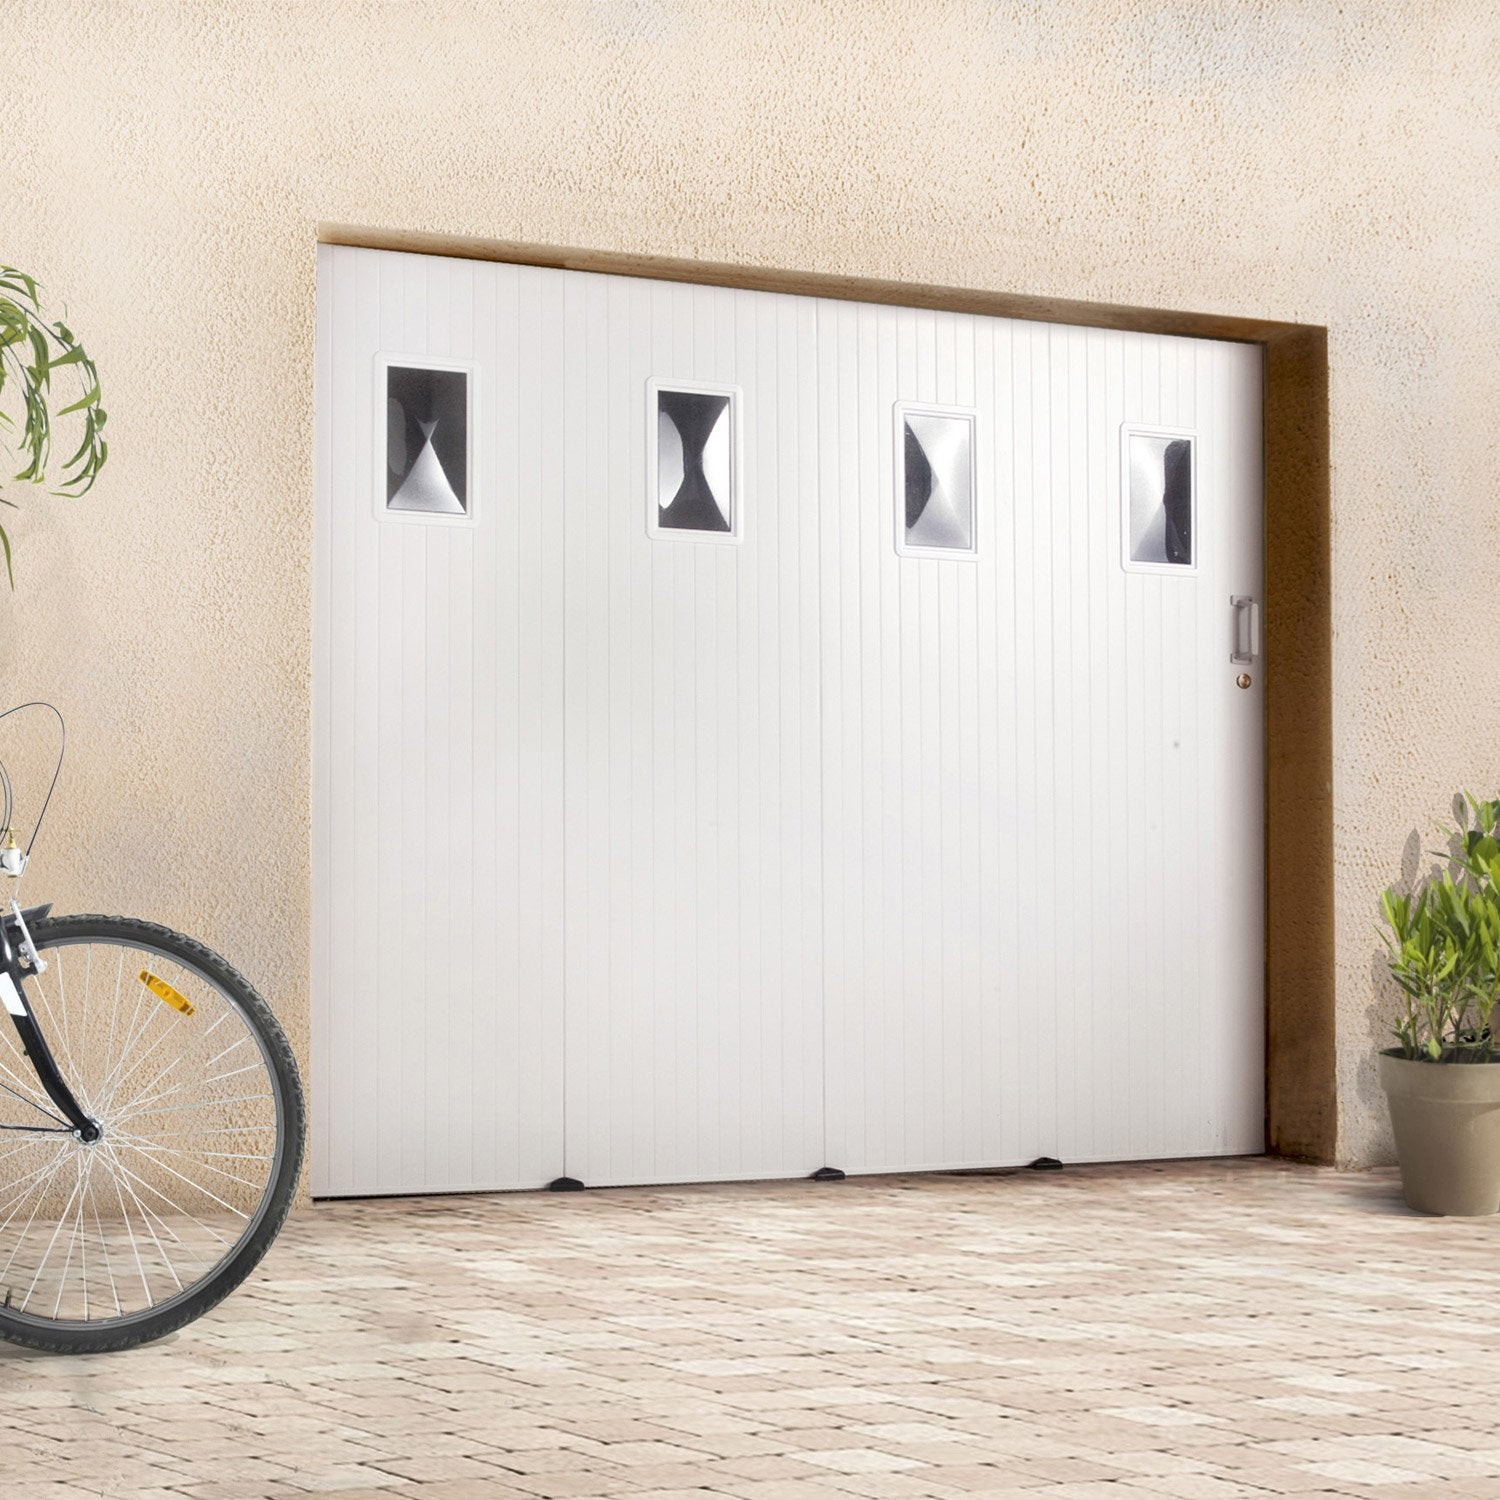 Pose d 39 une porte de garage coulissante leroy merlin for Porte de chambre leroy merlin